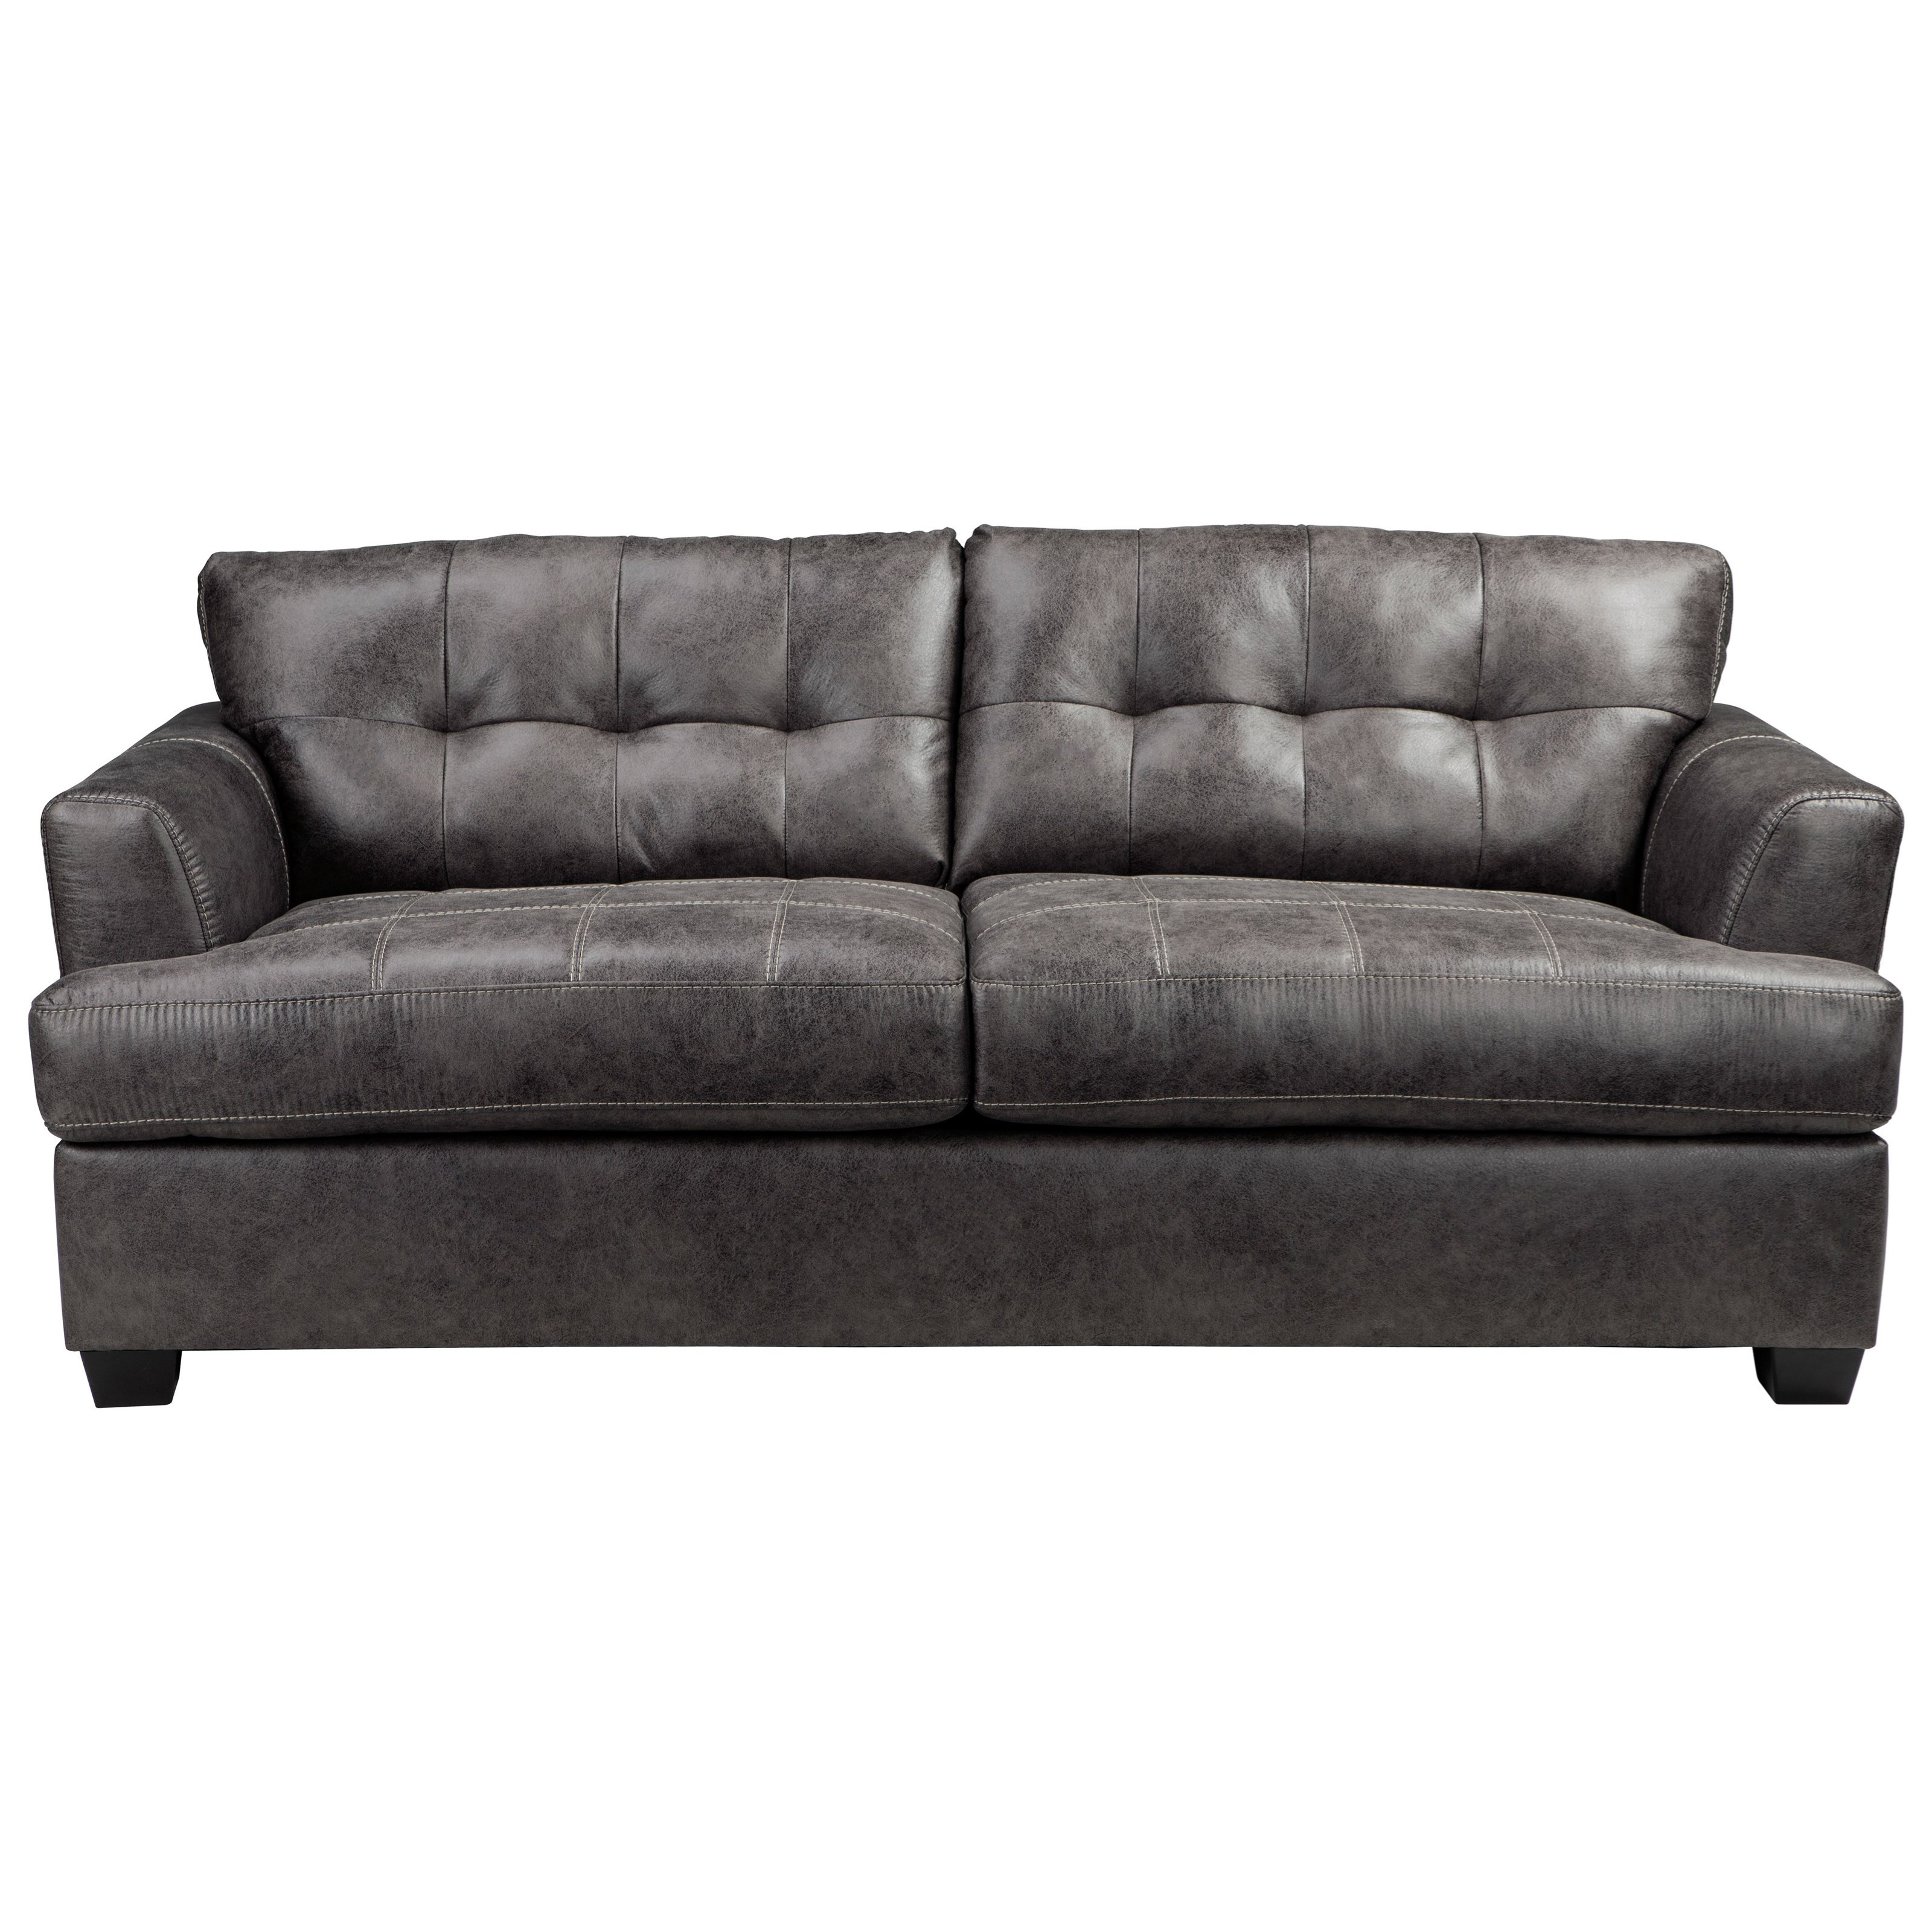 Benchcraft Inmon 6580738 Faux Leather Sofa With Tufted Back Dunk Bright Furniture Sofas